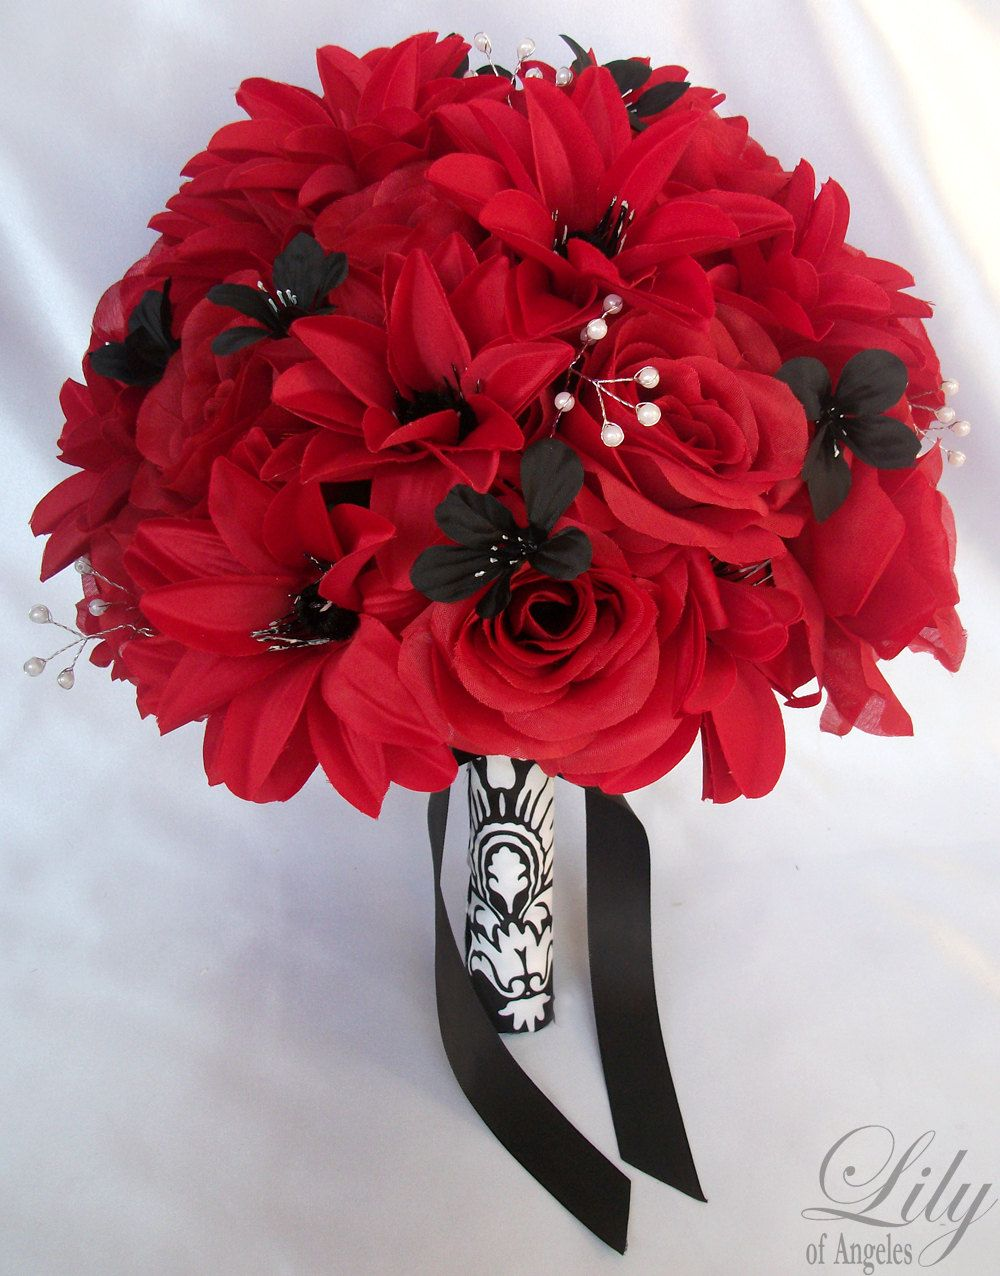 17 pieces package silk flower wedding decoration bridal bouquet 17 pieces package silk flower wedding decoration bridal bouquet black red lily of angeles 19999 via etsy izmirmasajfo